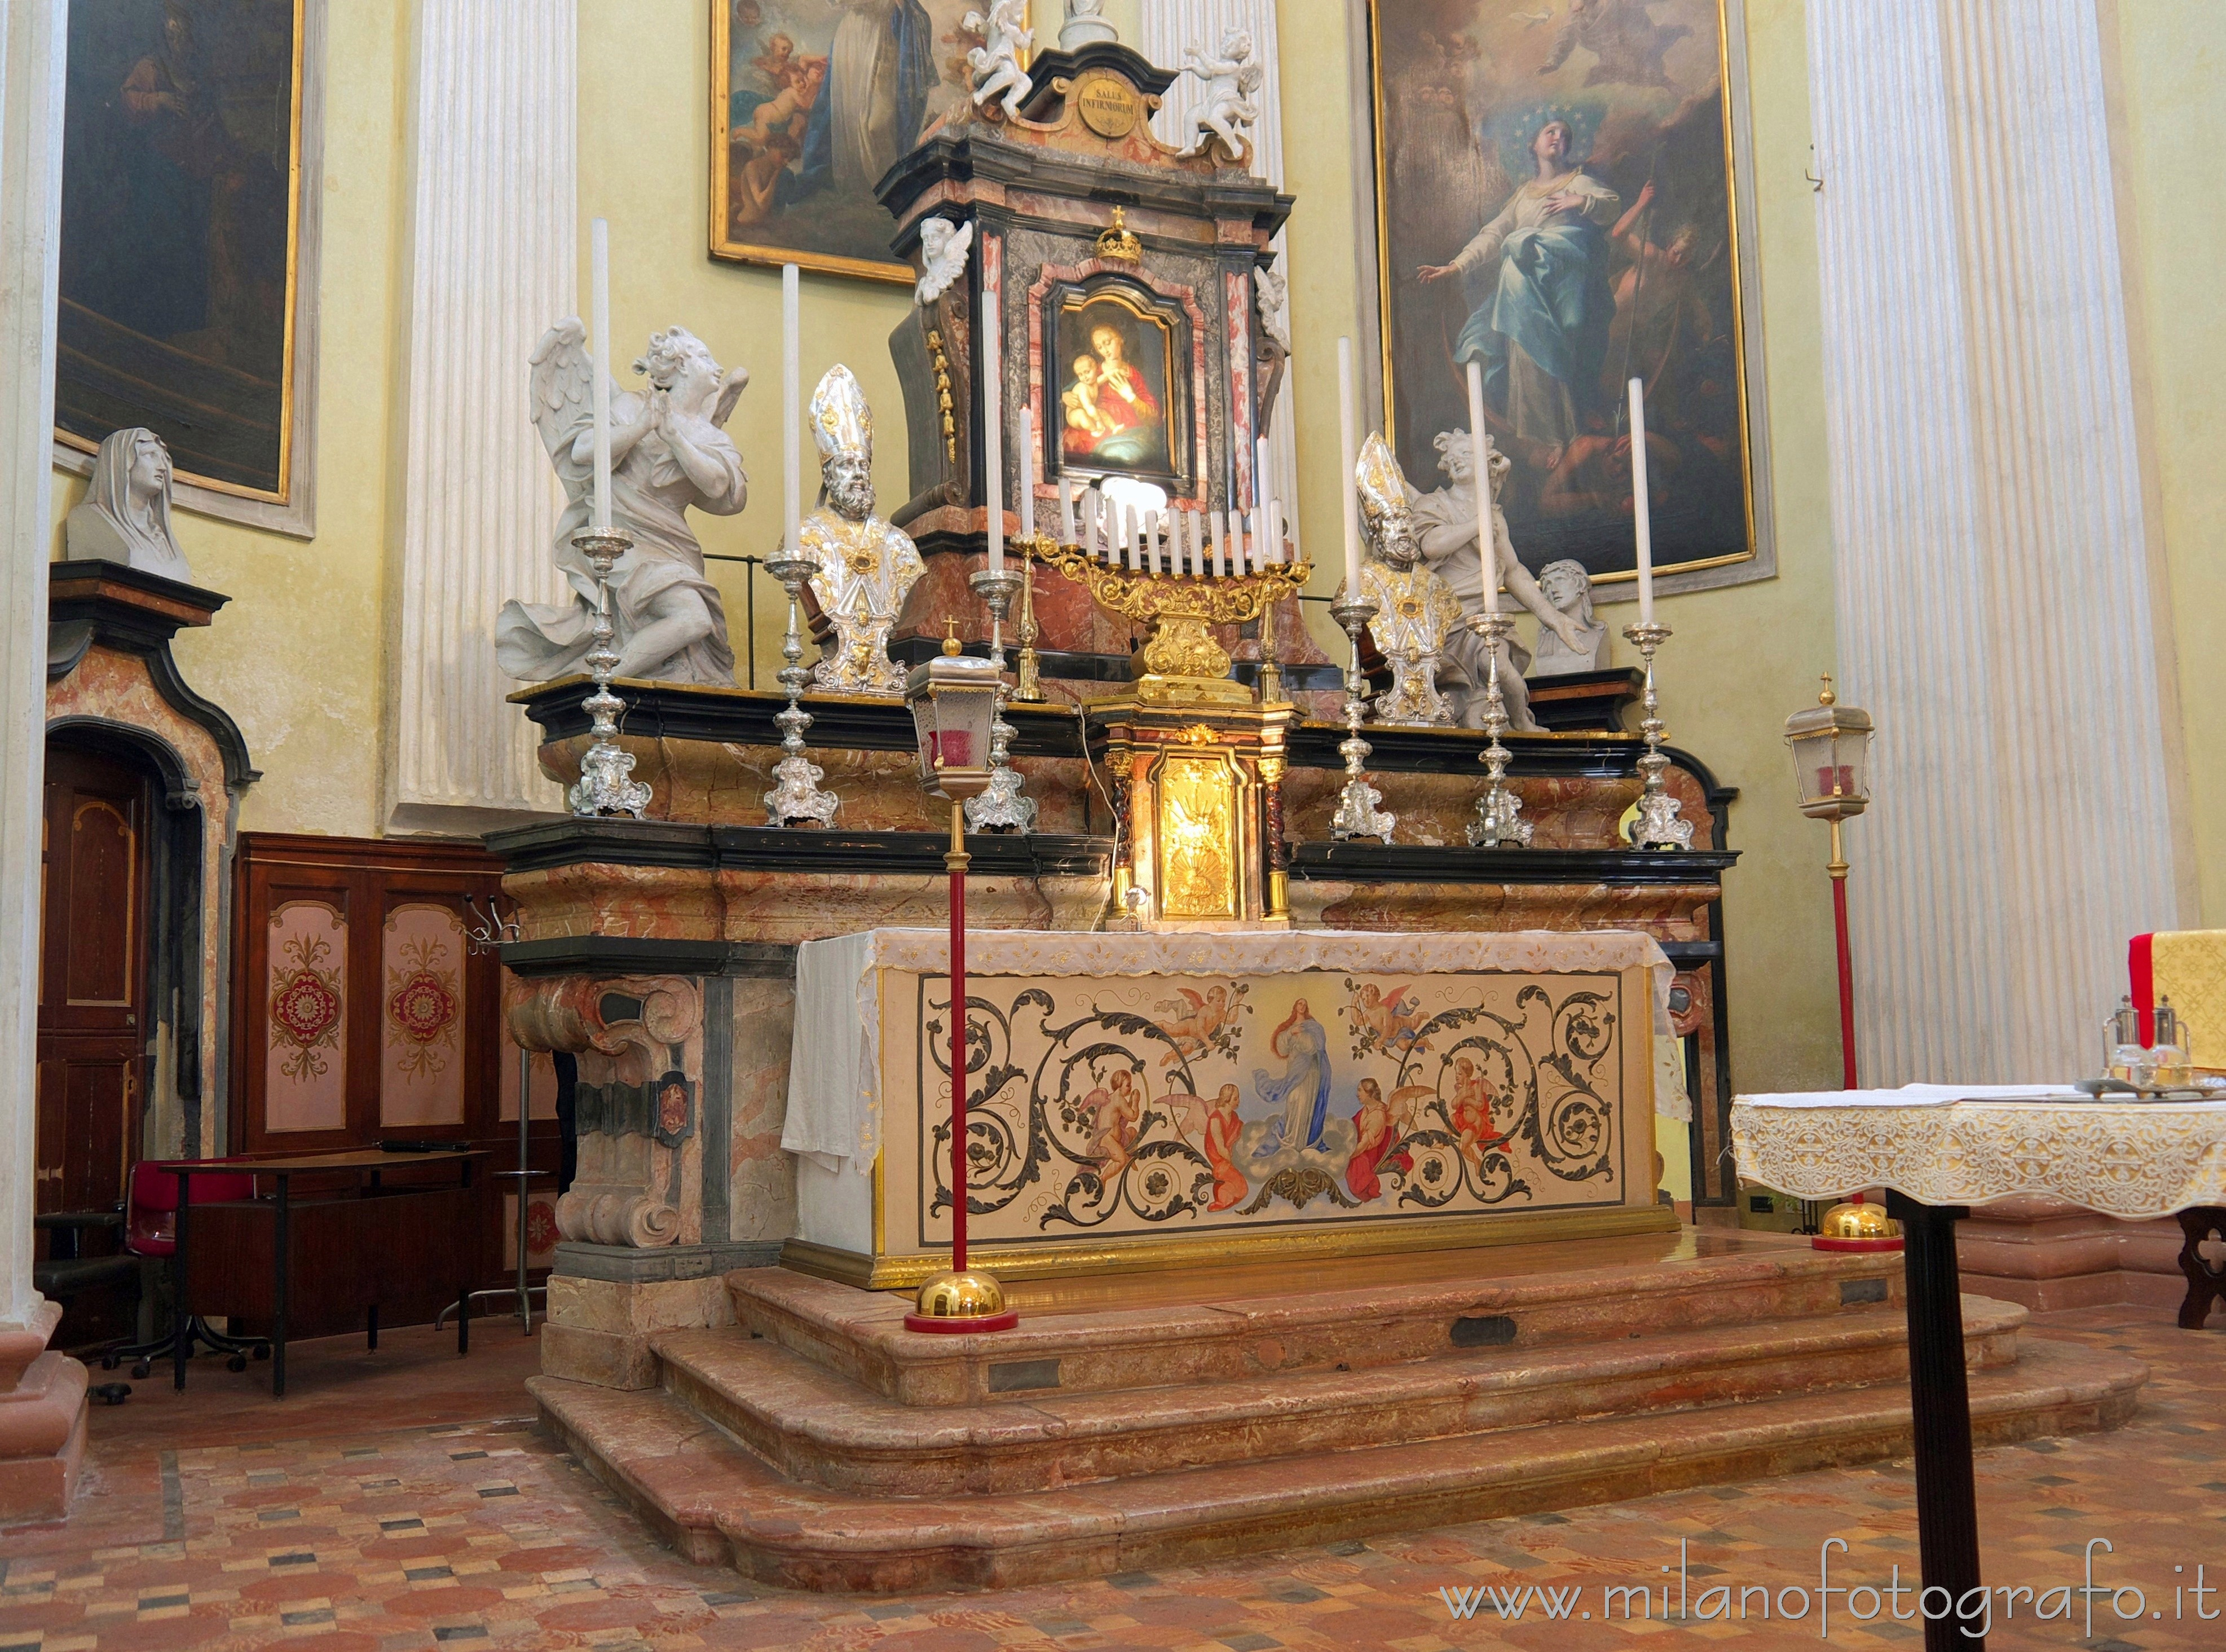 Milan (Italy): Main altar of the Church of Saint Mary of the Healthcare - Milan (Italy)